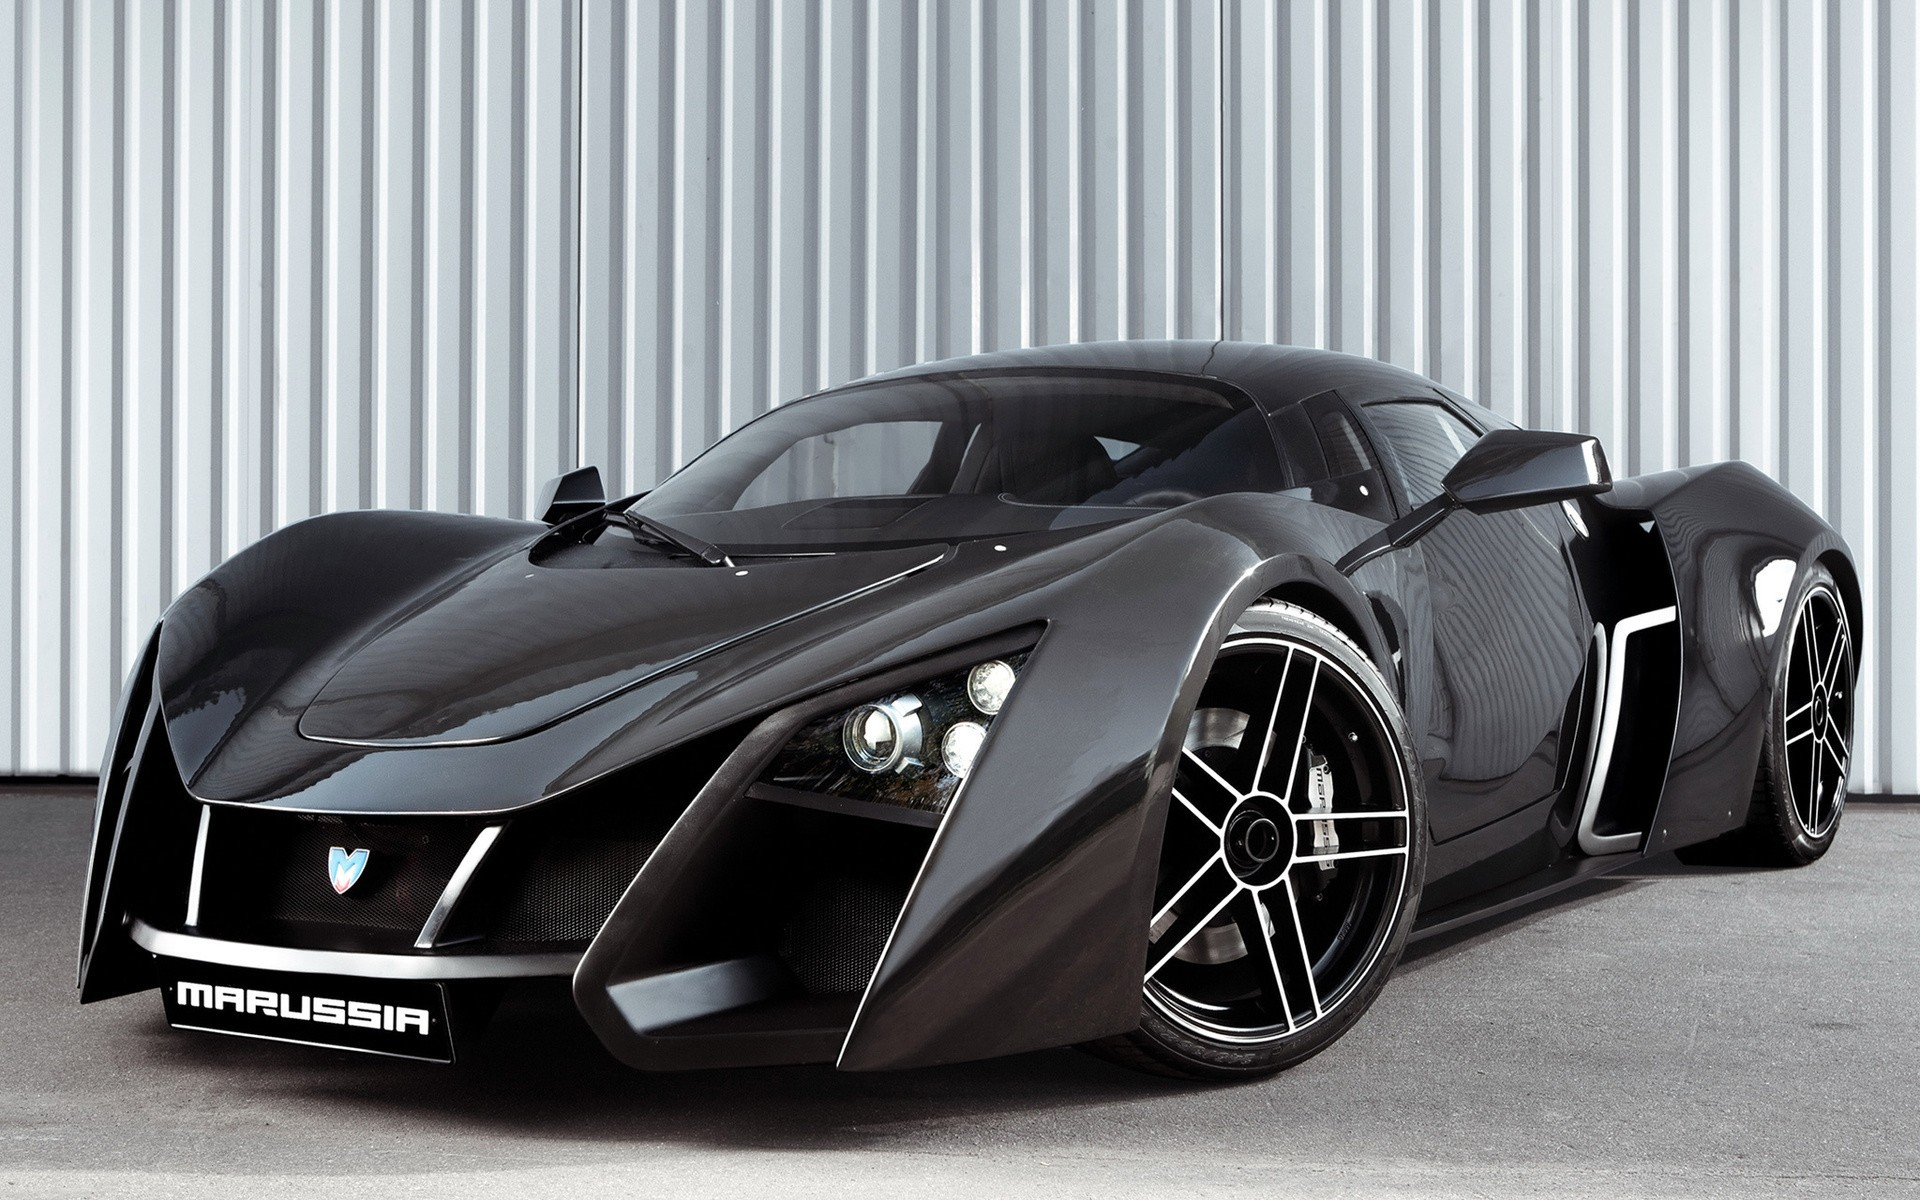 Supercars Marusia exotic cars wallpapers and images - wallpapers ...